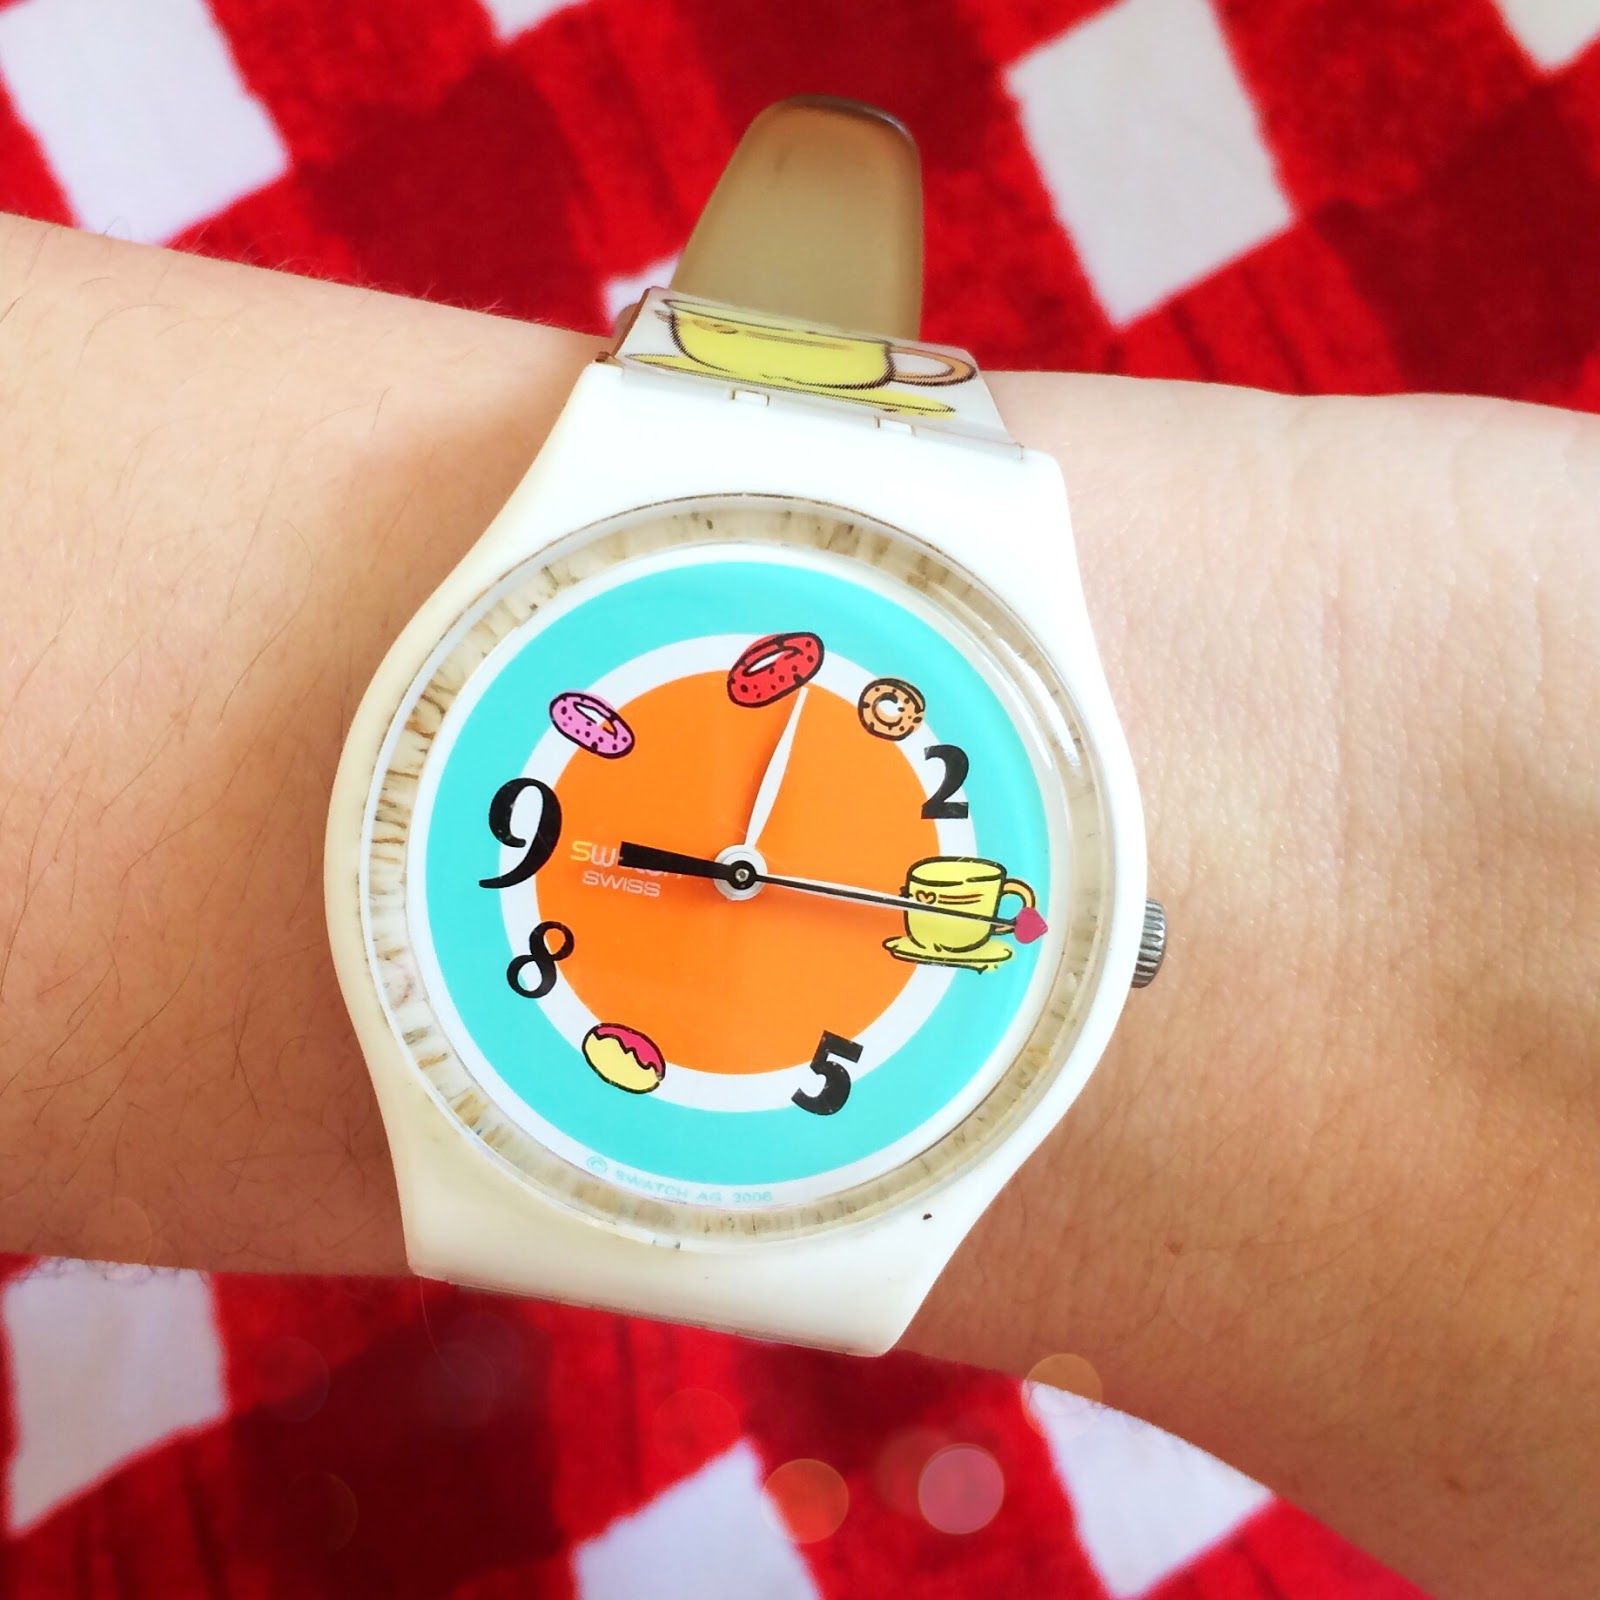 Swatch Watch, Donut Watch